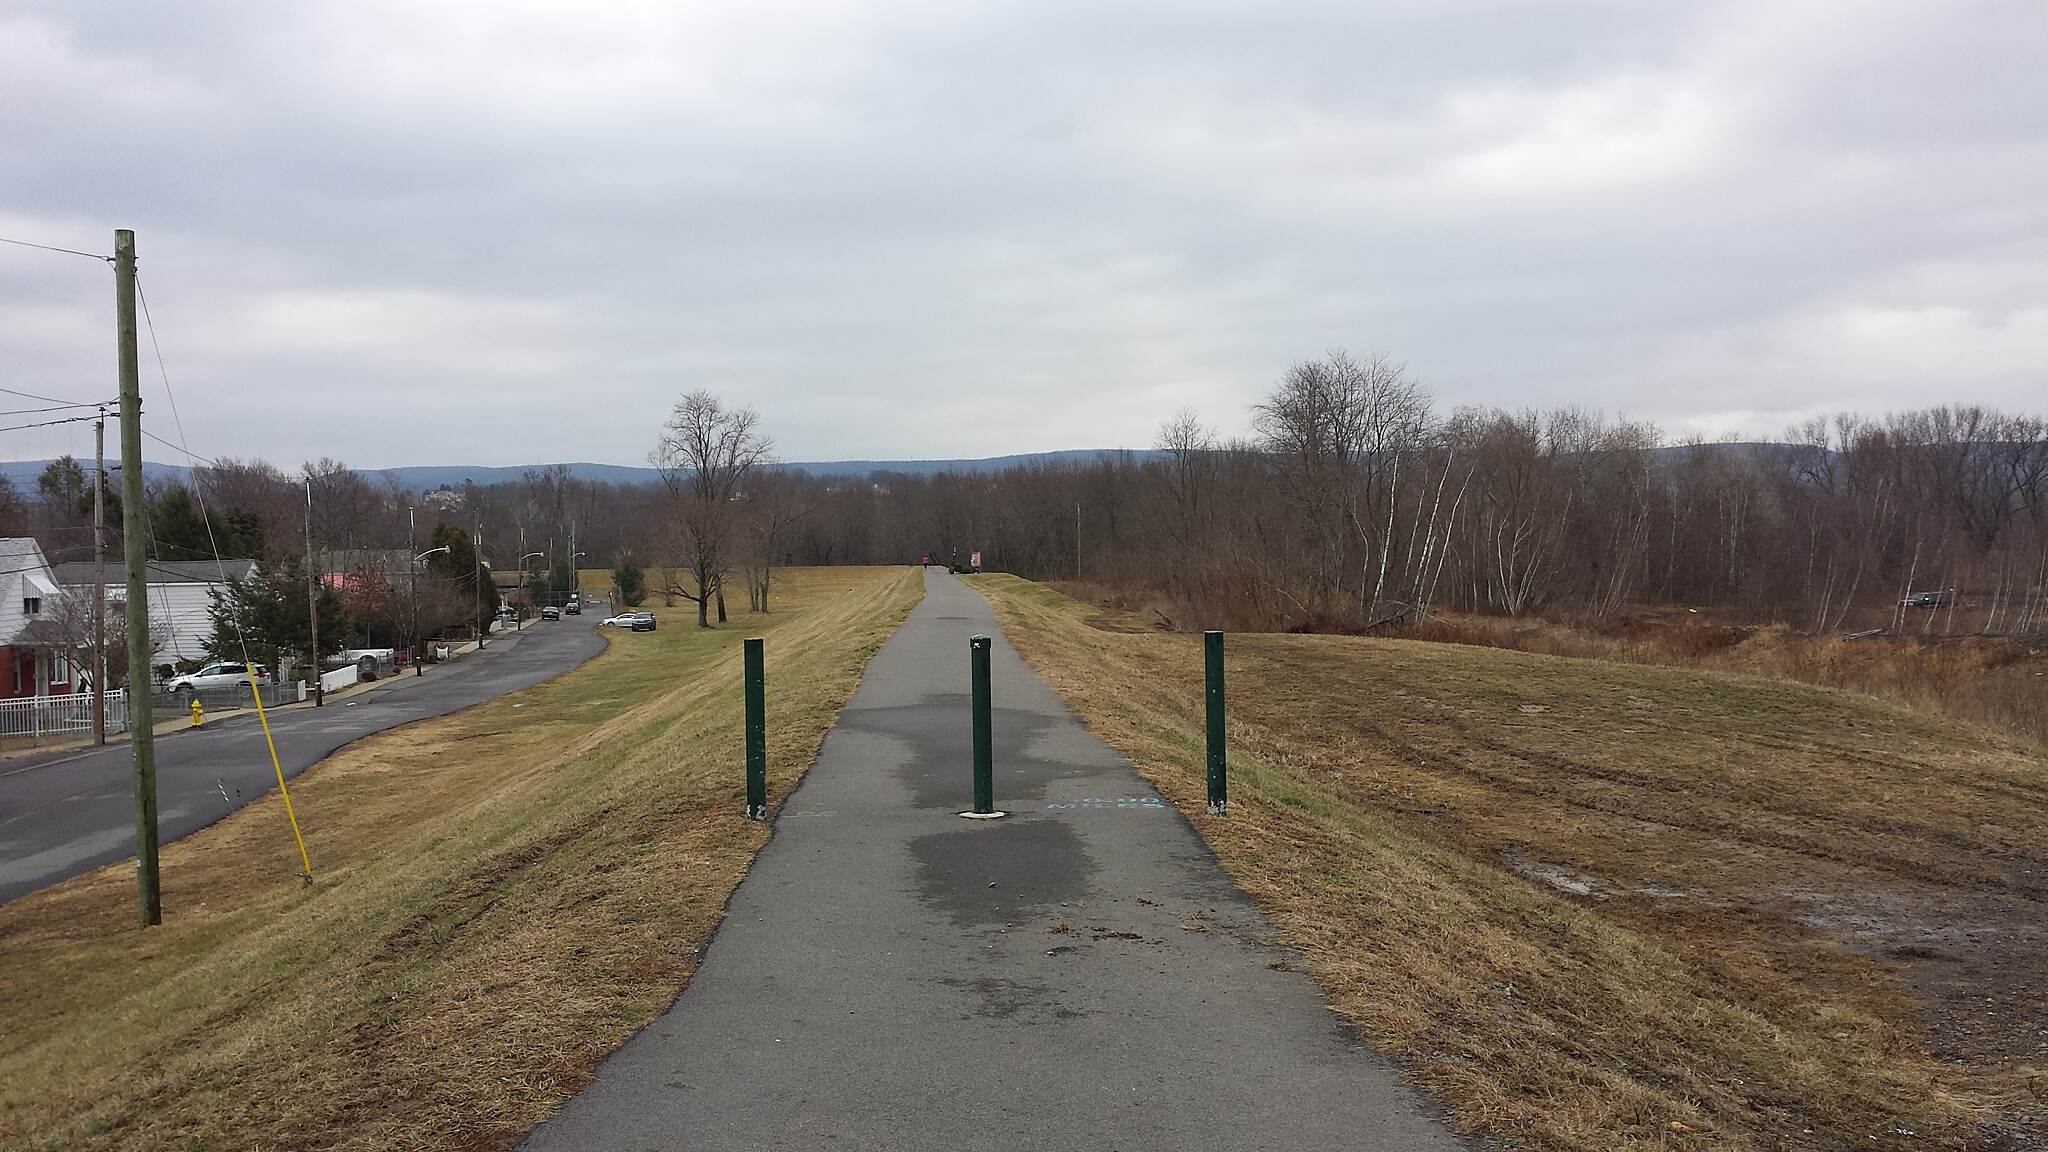 Luzerne County Levee Trail End of Trail Eventually this is where the Susquehanna Warrior Trail would connect to the Levee Trail.